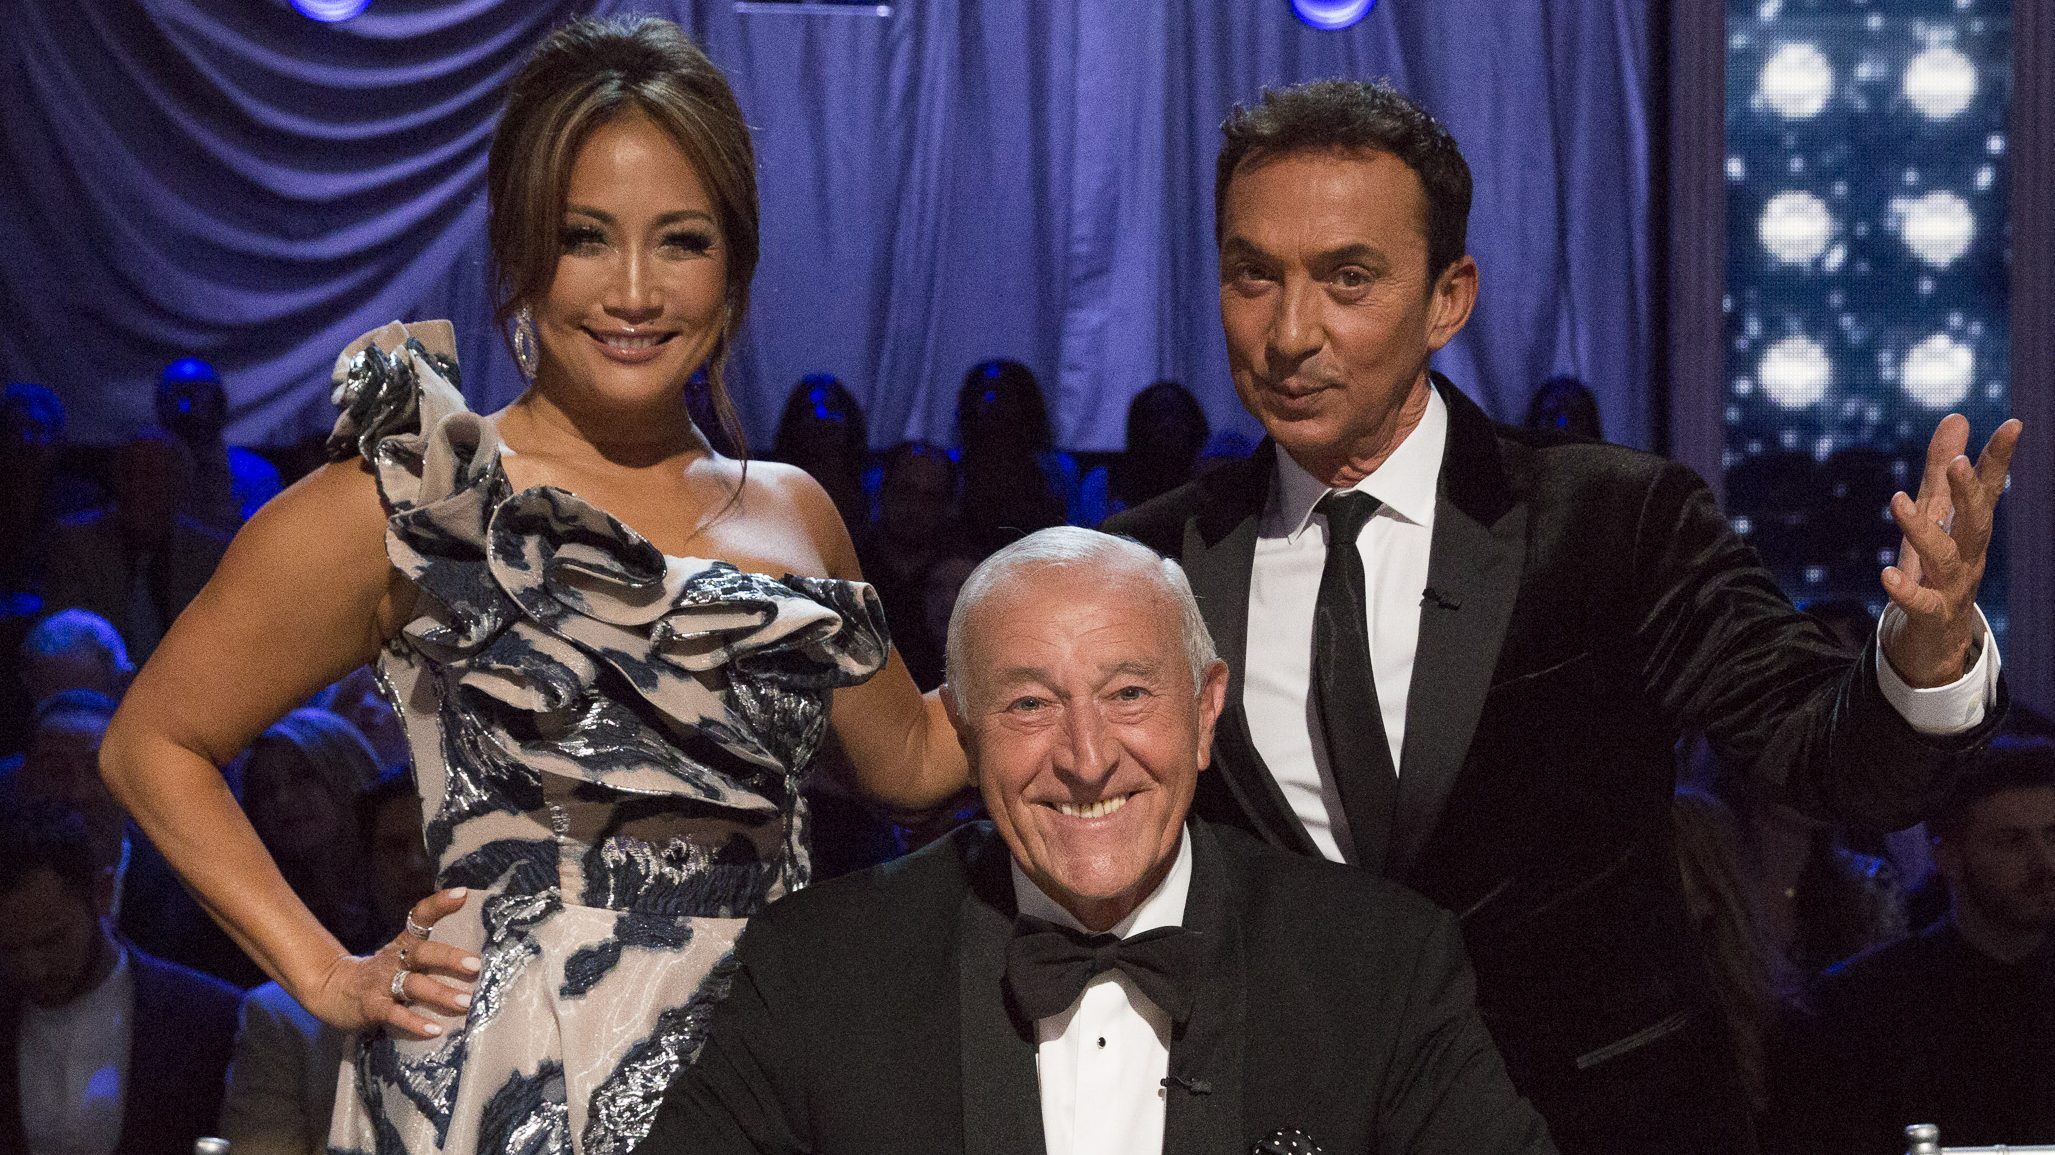 Dancing With the Stars' Season 30 Premiere Date Announced   Heavy.com